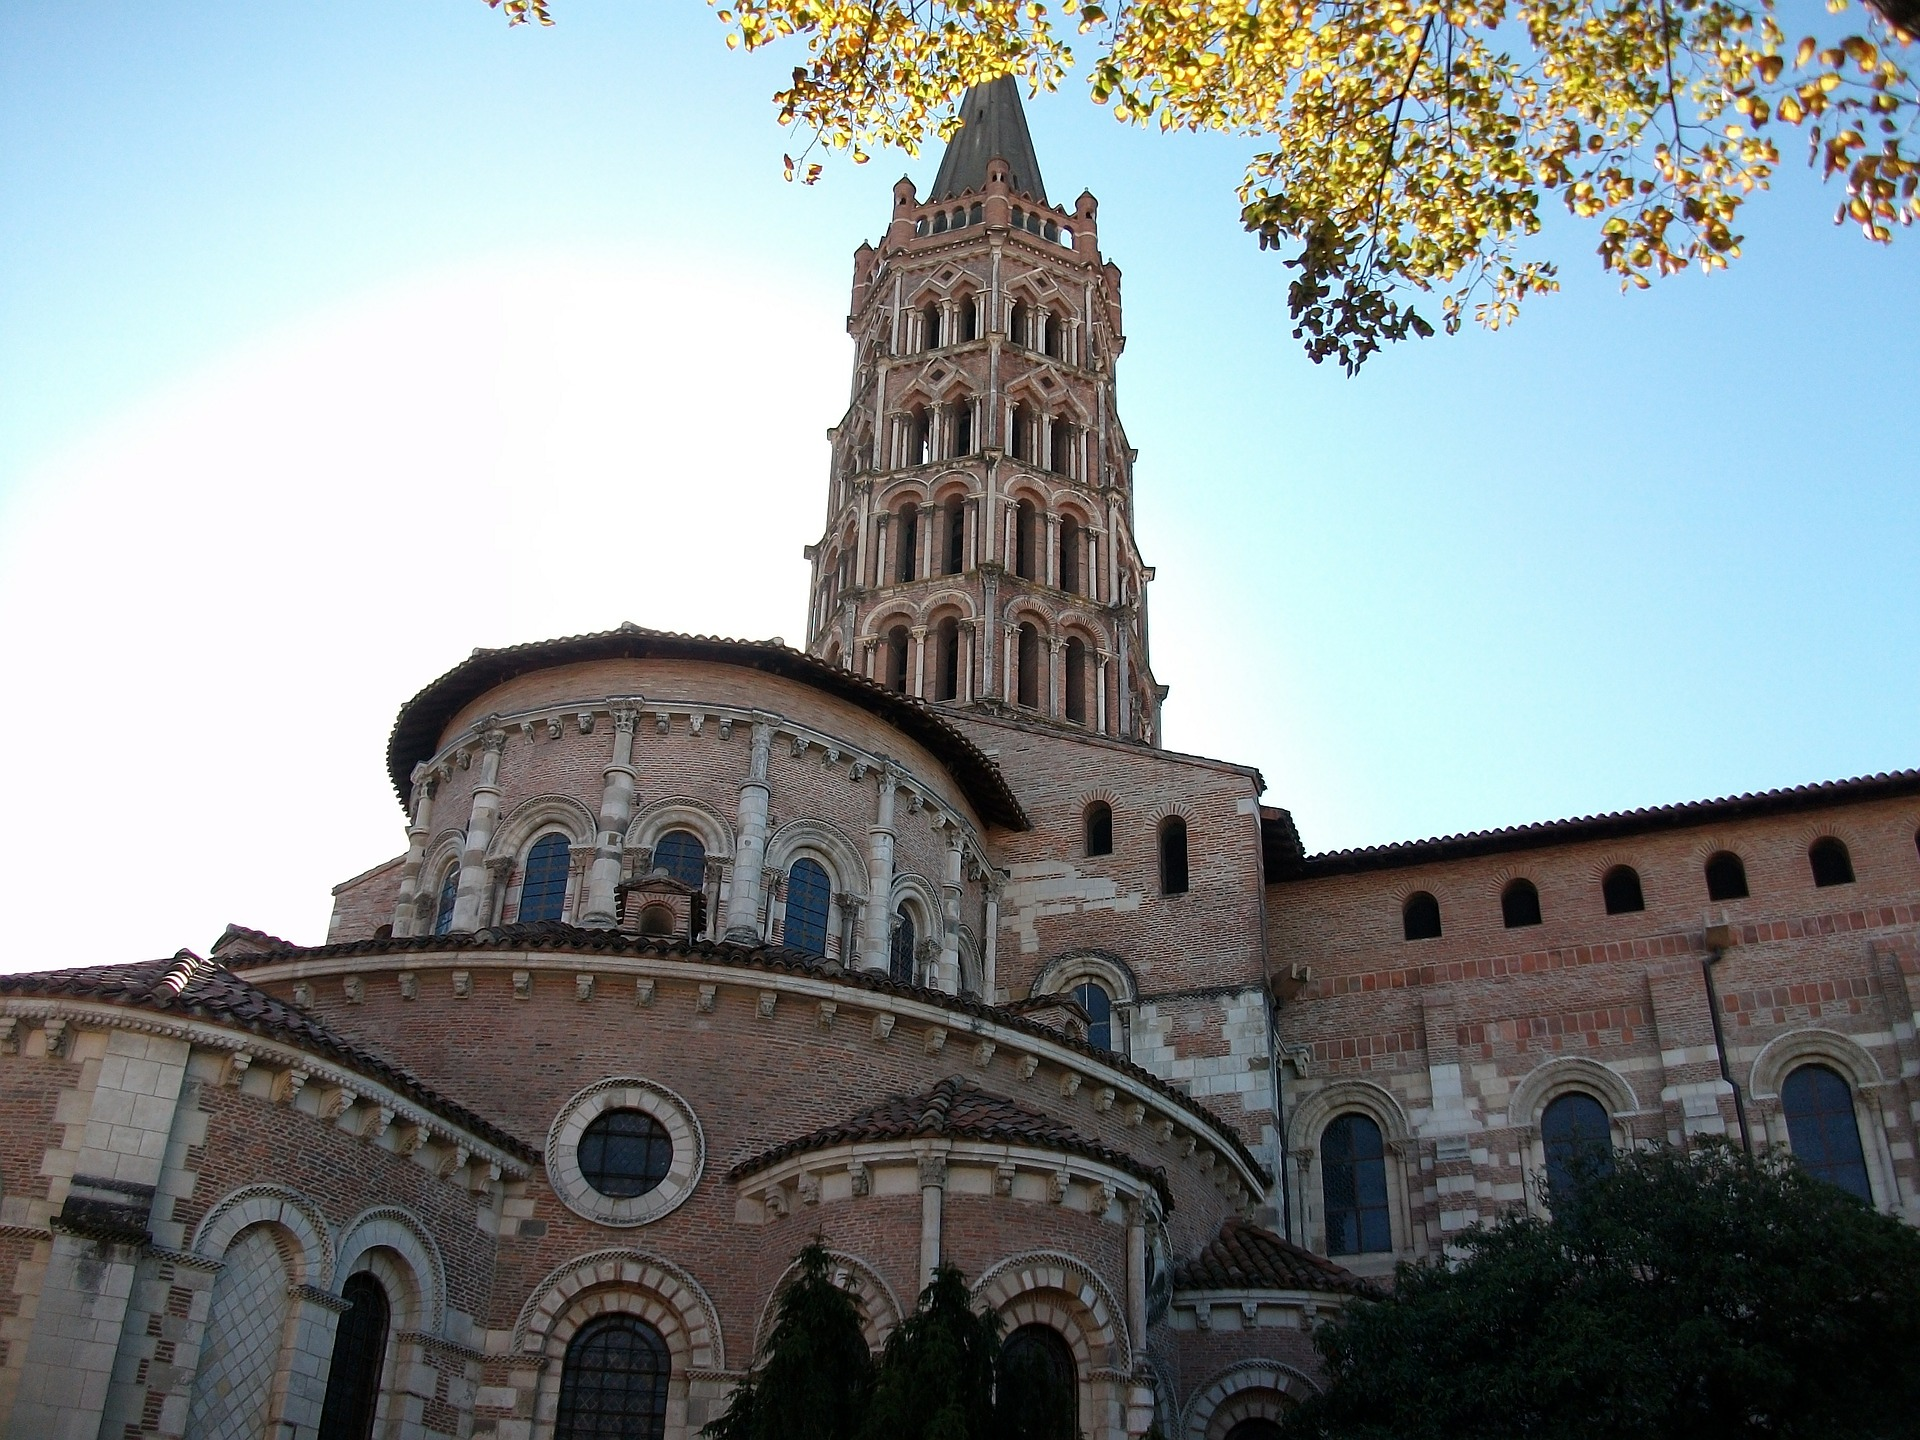 toulouse-527355_1920